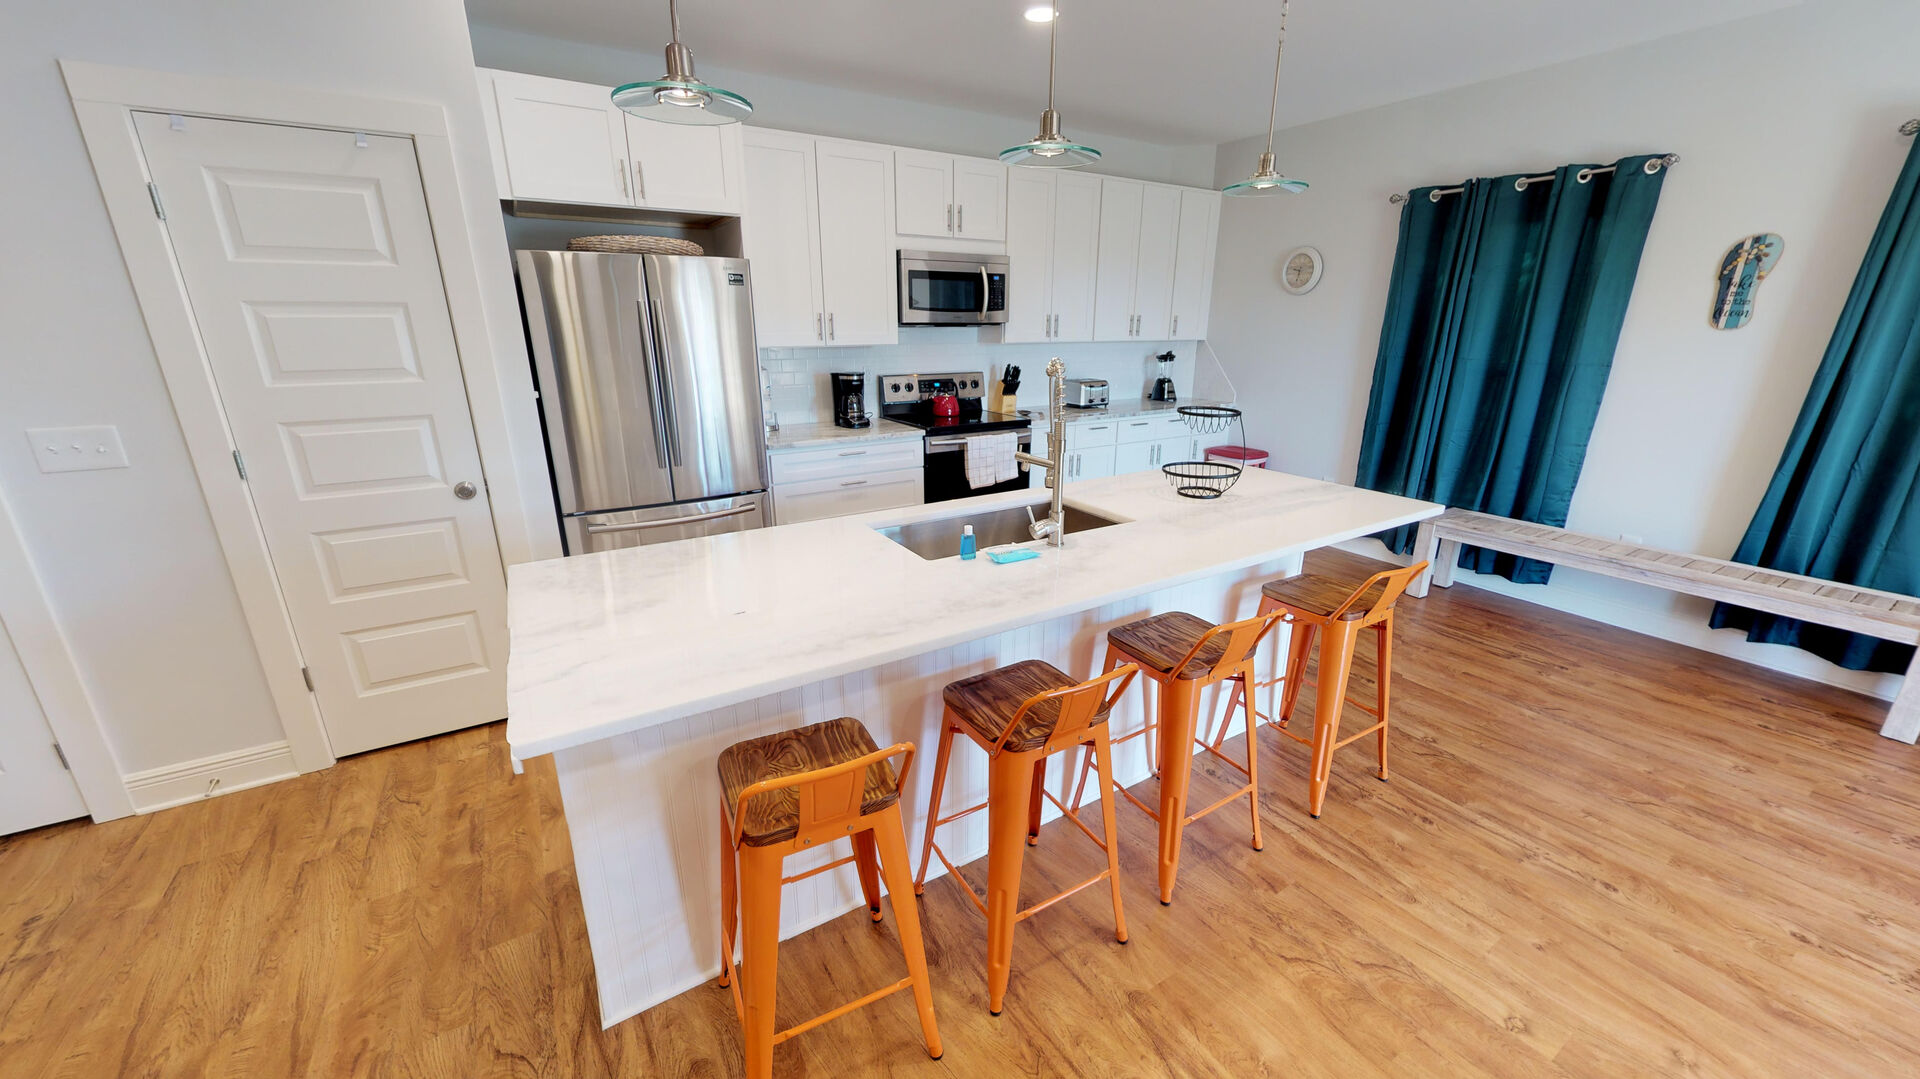 Kitchen Island with Stools, Refrigerator, Microwave, Toaster, and a Bench.